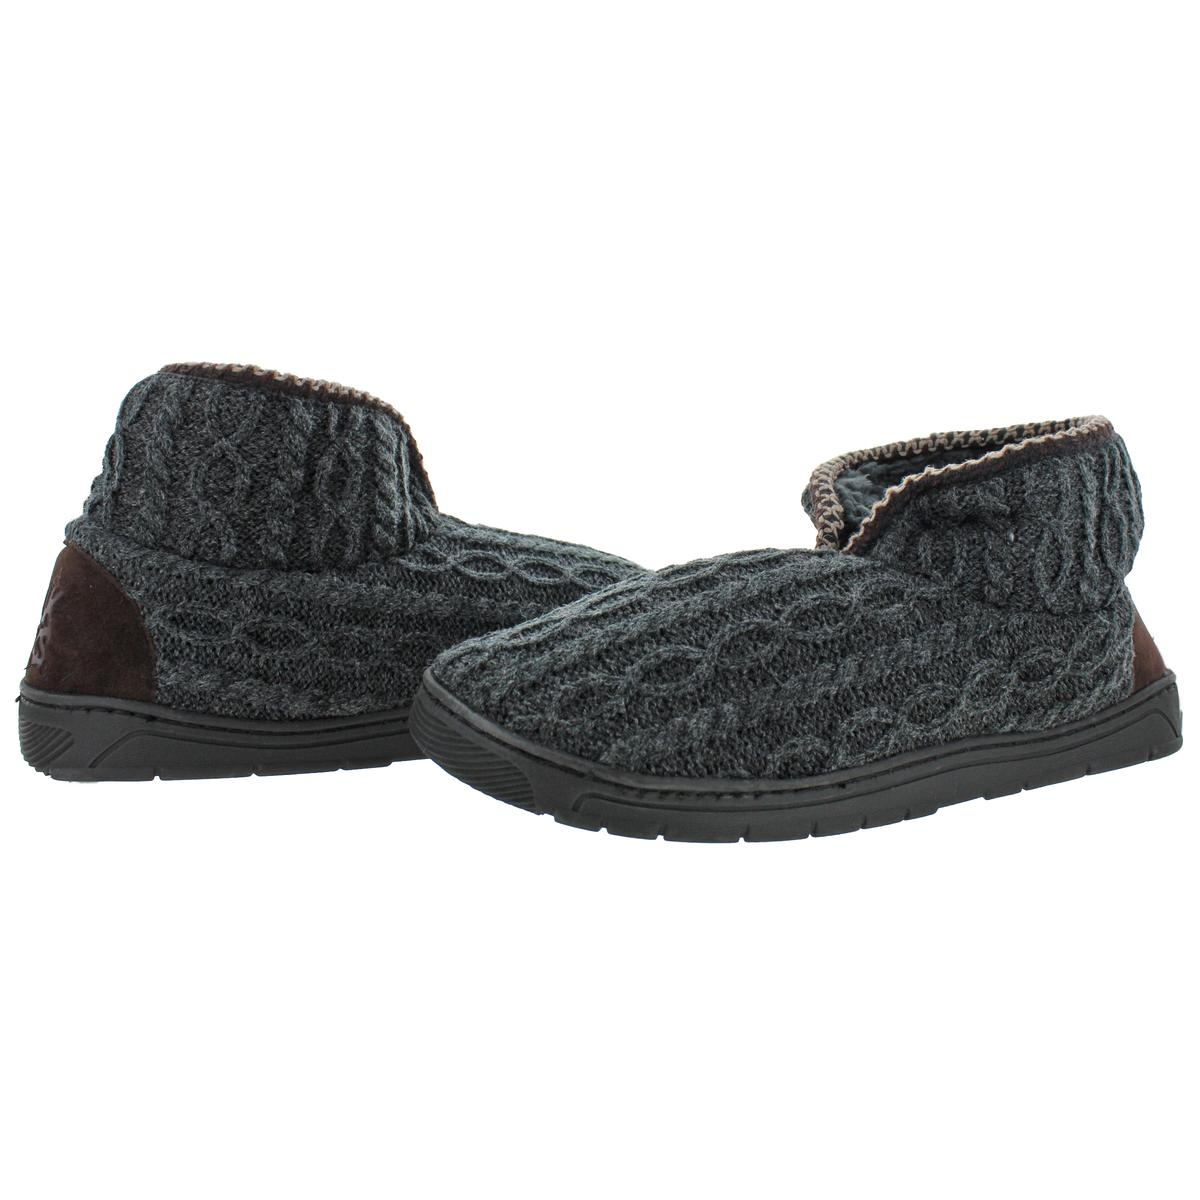 Mukluks-Men-039-s-Mark-Sweater-Knit-Furpa-Ankle-Bootie-House-Slippers thumbnail 20